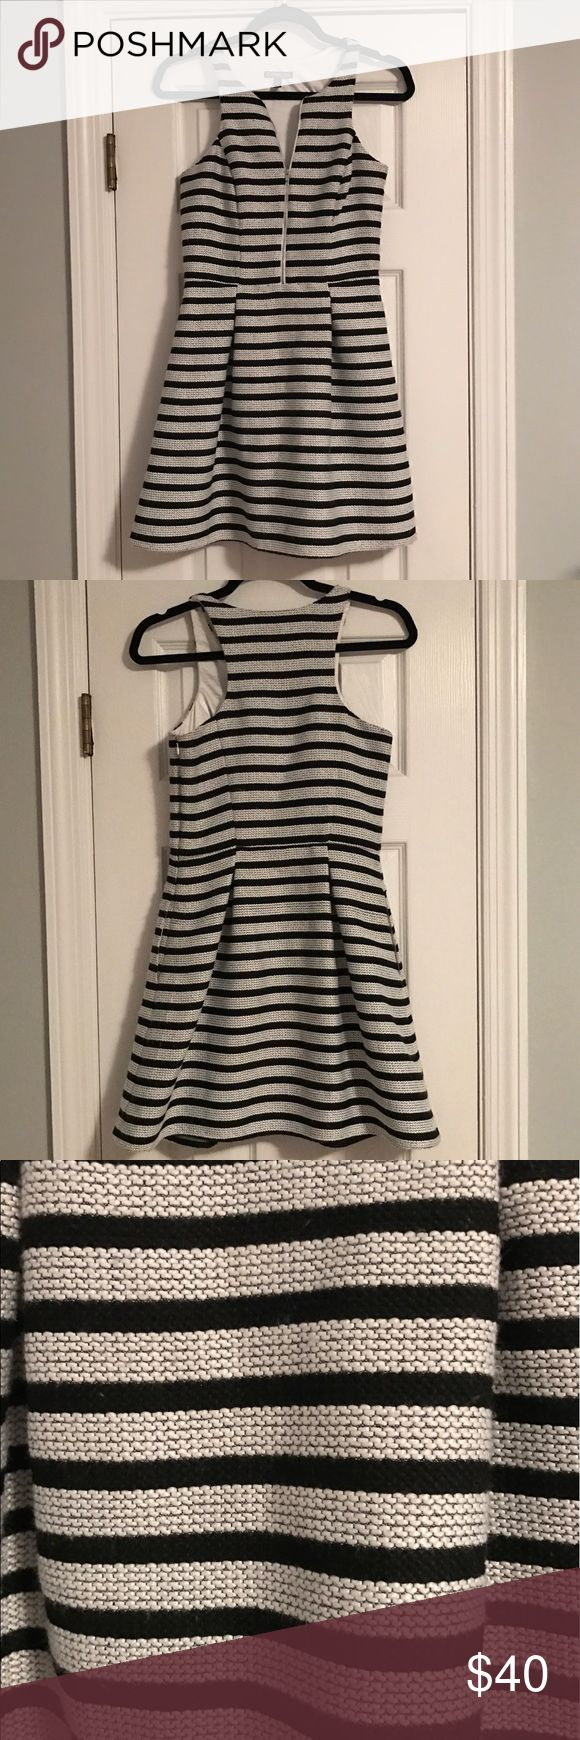 Business, professional dress Black and white striped dress. Adjustable zipper. Pockets!! Perfect for a business occasion. Perfect condition. Worn once. True to size Express Dresses Mini